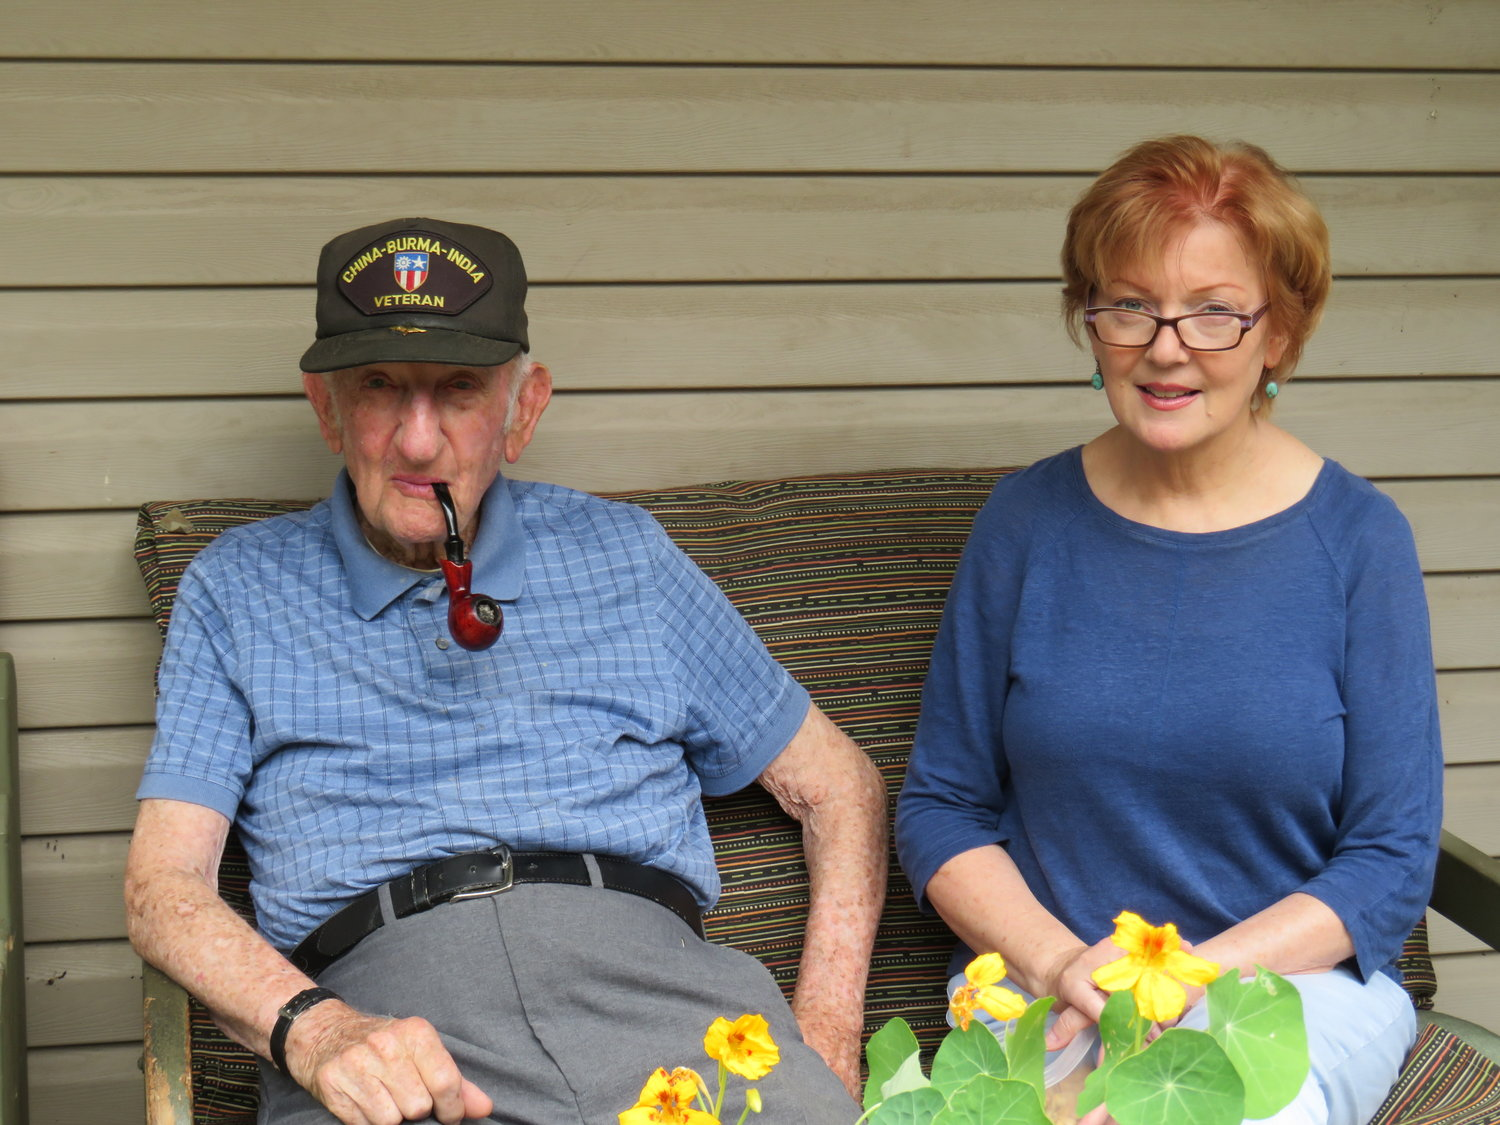 World War II veteran Arthur Bonne, of Lakeview, celebrated his 100th birthday on Jan. 19. He is pictured with his daughter, Suzanne.